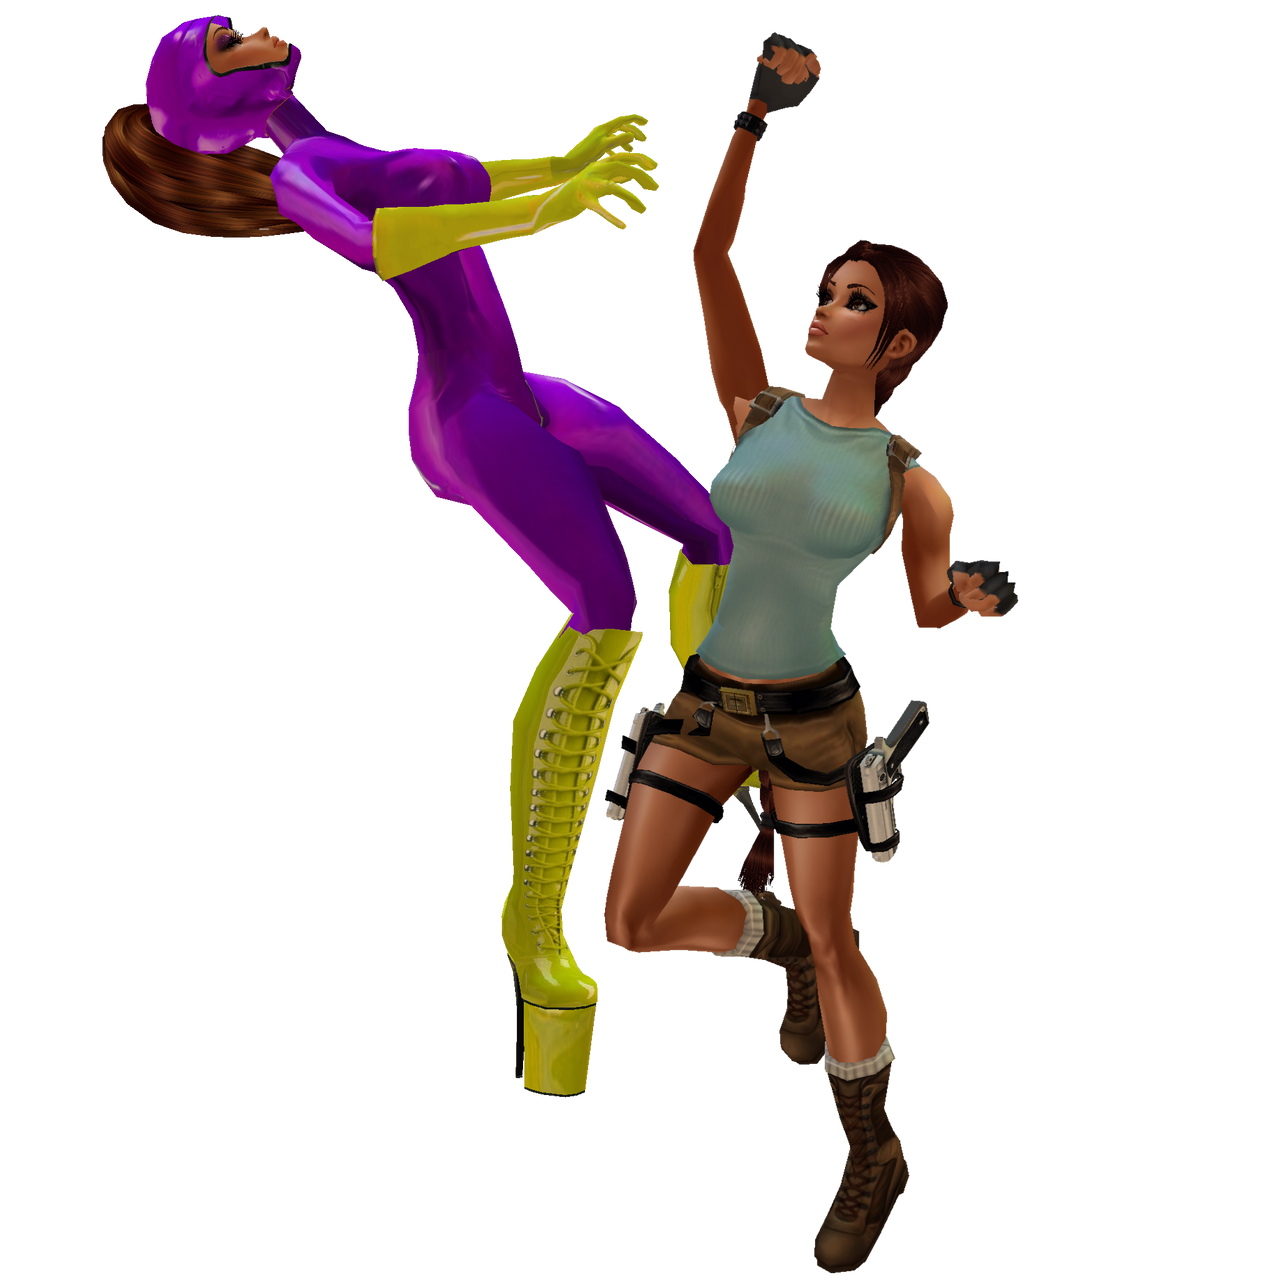 Purple Vixen Vs Lara Croft: W.I.P. Unedit PreView by LaraLuvsMe